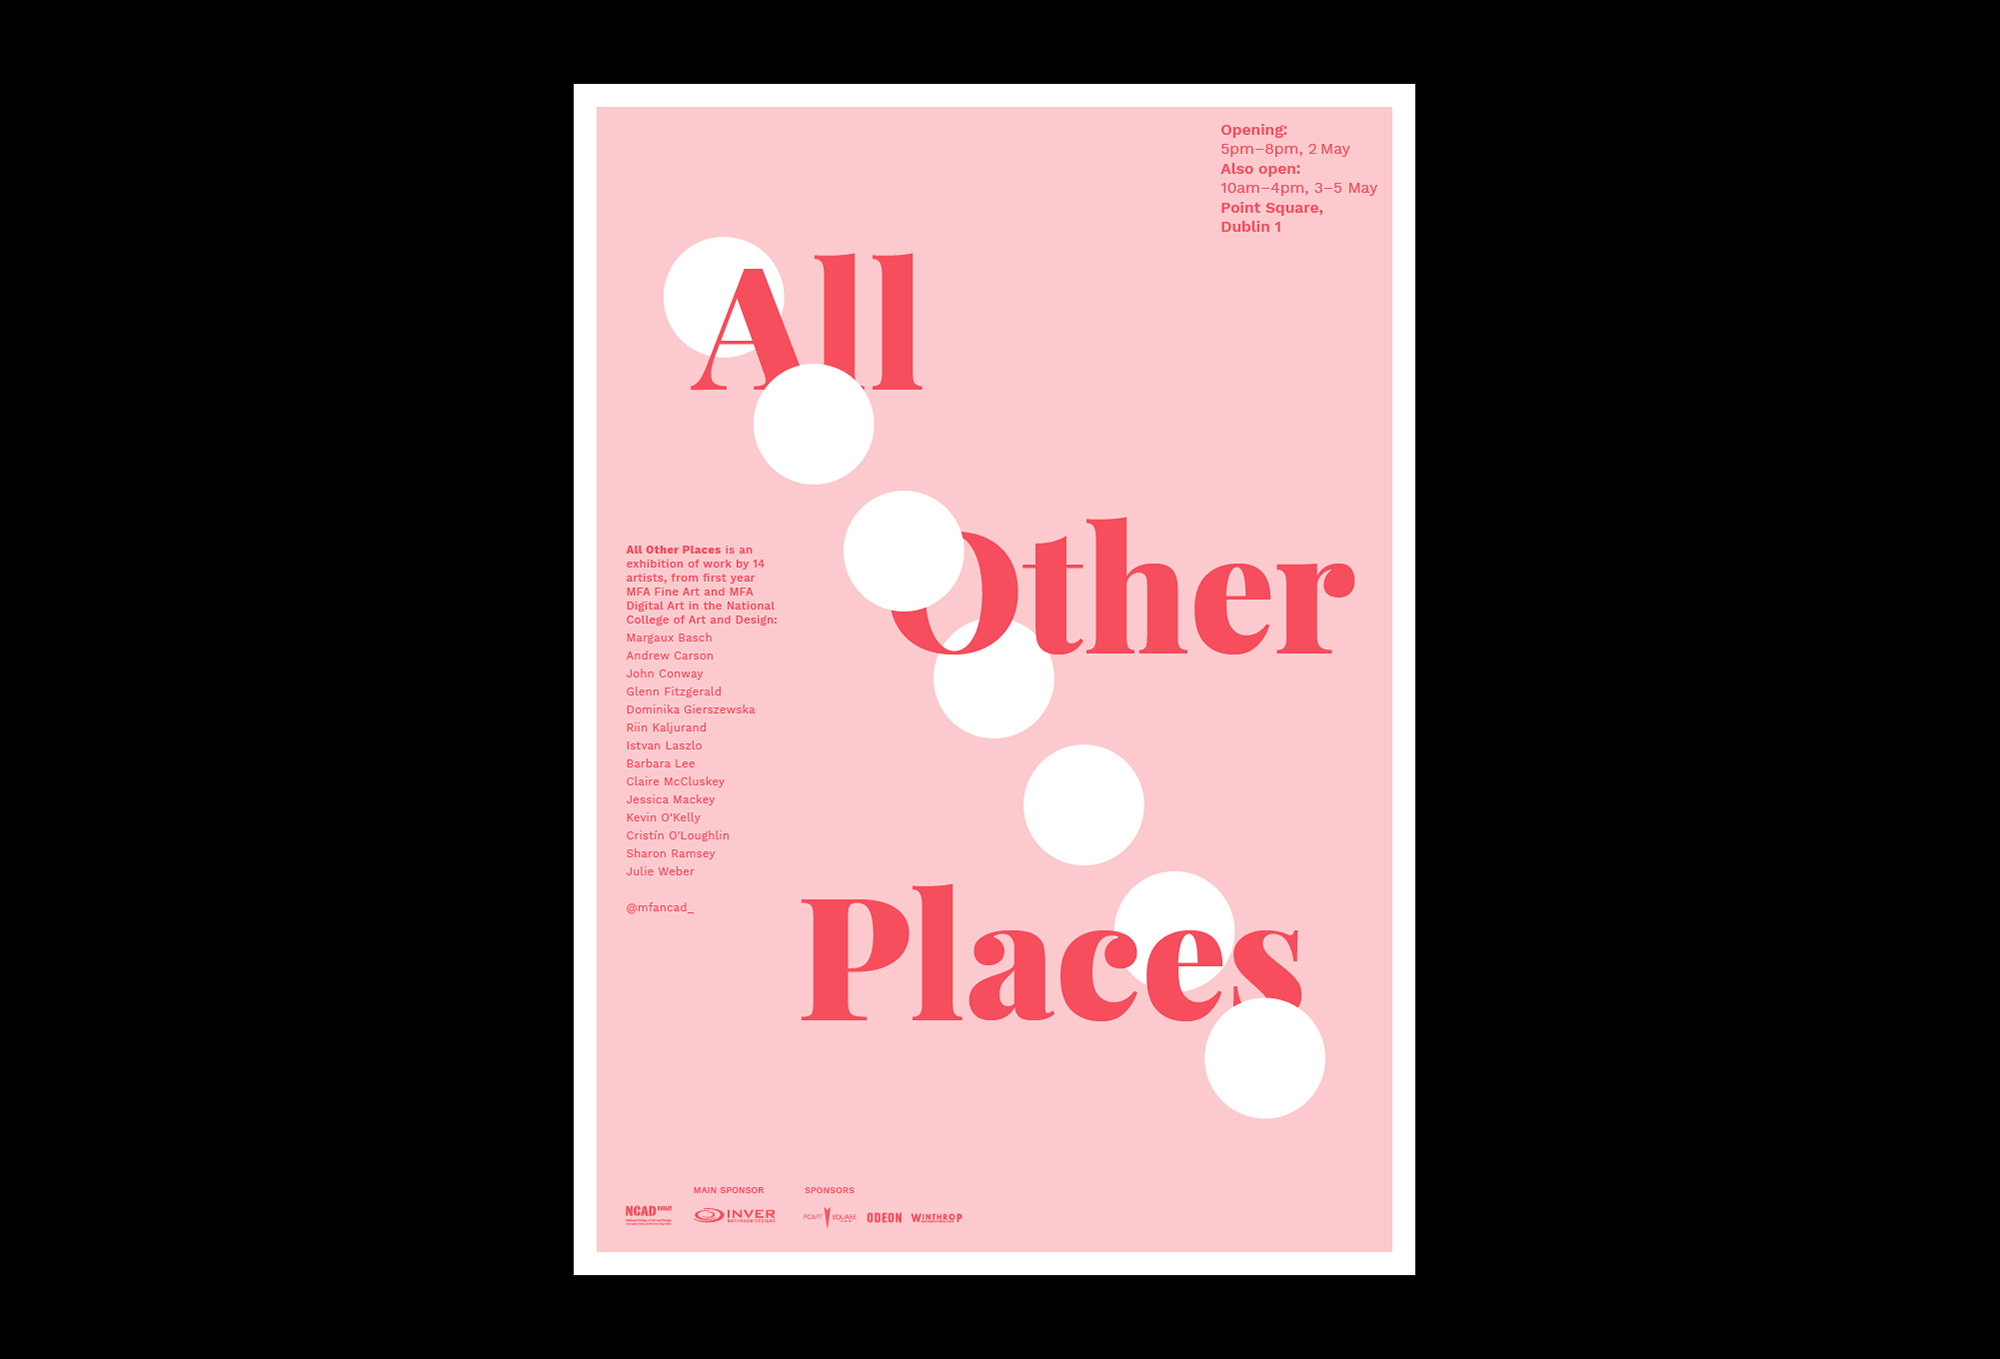 Cover image: All Other Places